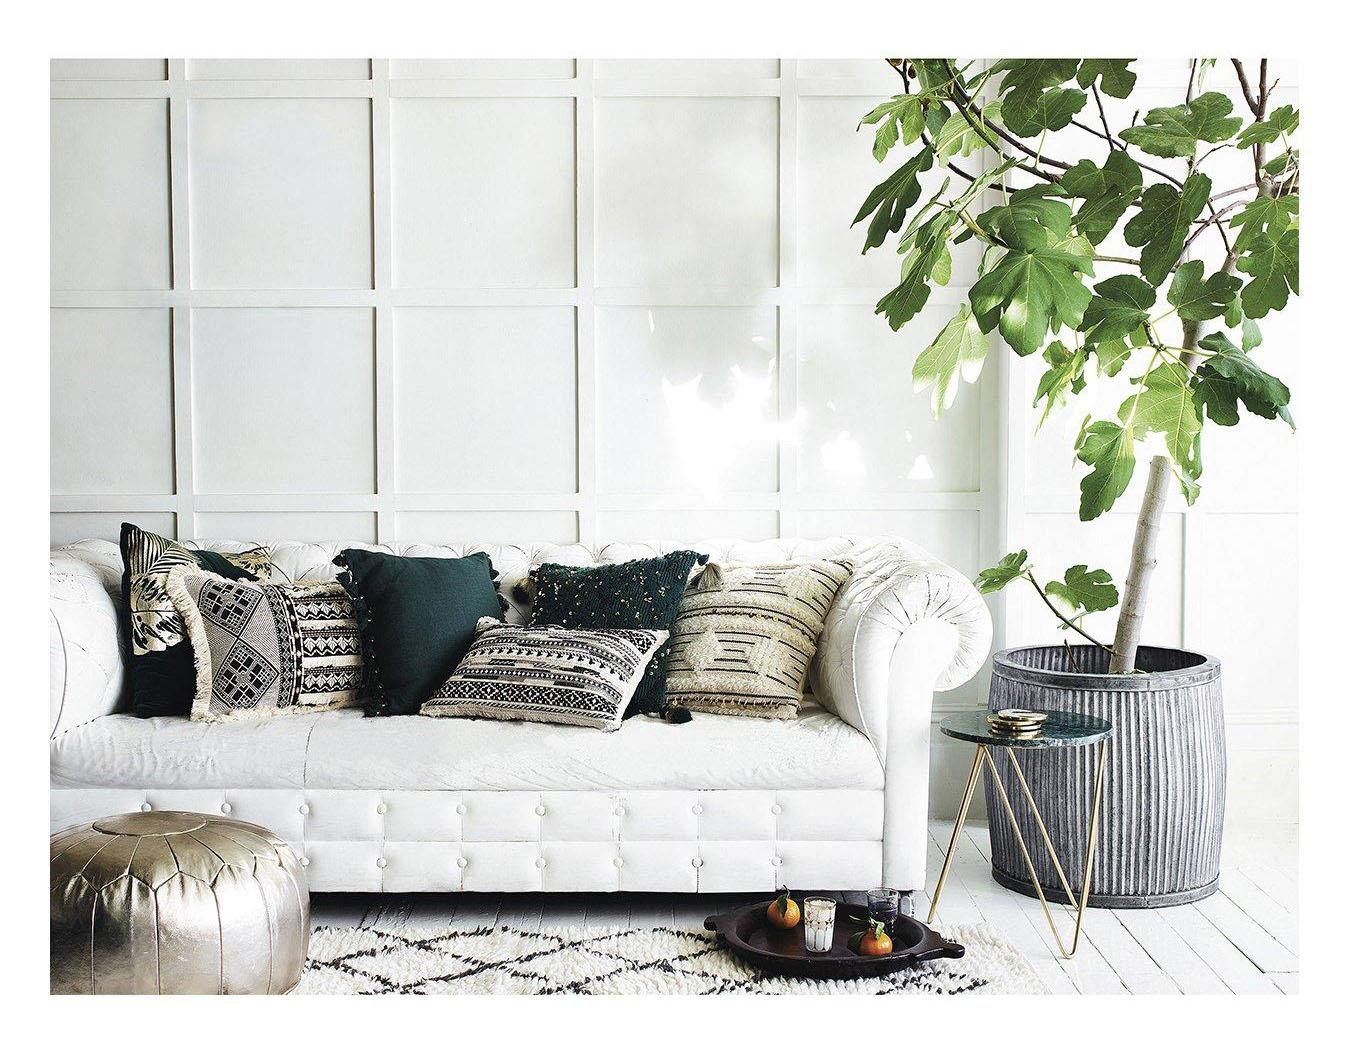 White, grey and green living room inspiration| Today we're talking inspiration for adding green to your living room. Green is a really versatile colour to decorate your home with. But, which colours and tones work well? What kind of accessories work with green? This post gives you ideas for pulling together an elegant green colour palette and pieces for your home. Read more: kittyandb.com #greenlivingroom #interiordecoratinginspiration #naturalaesthetic #whitesofa